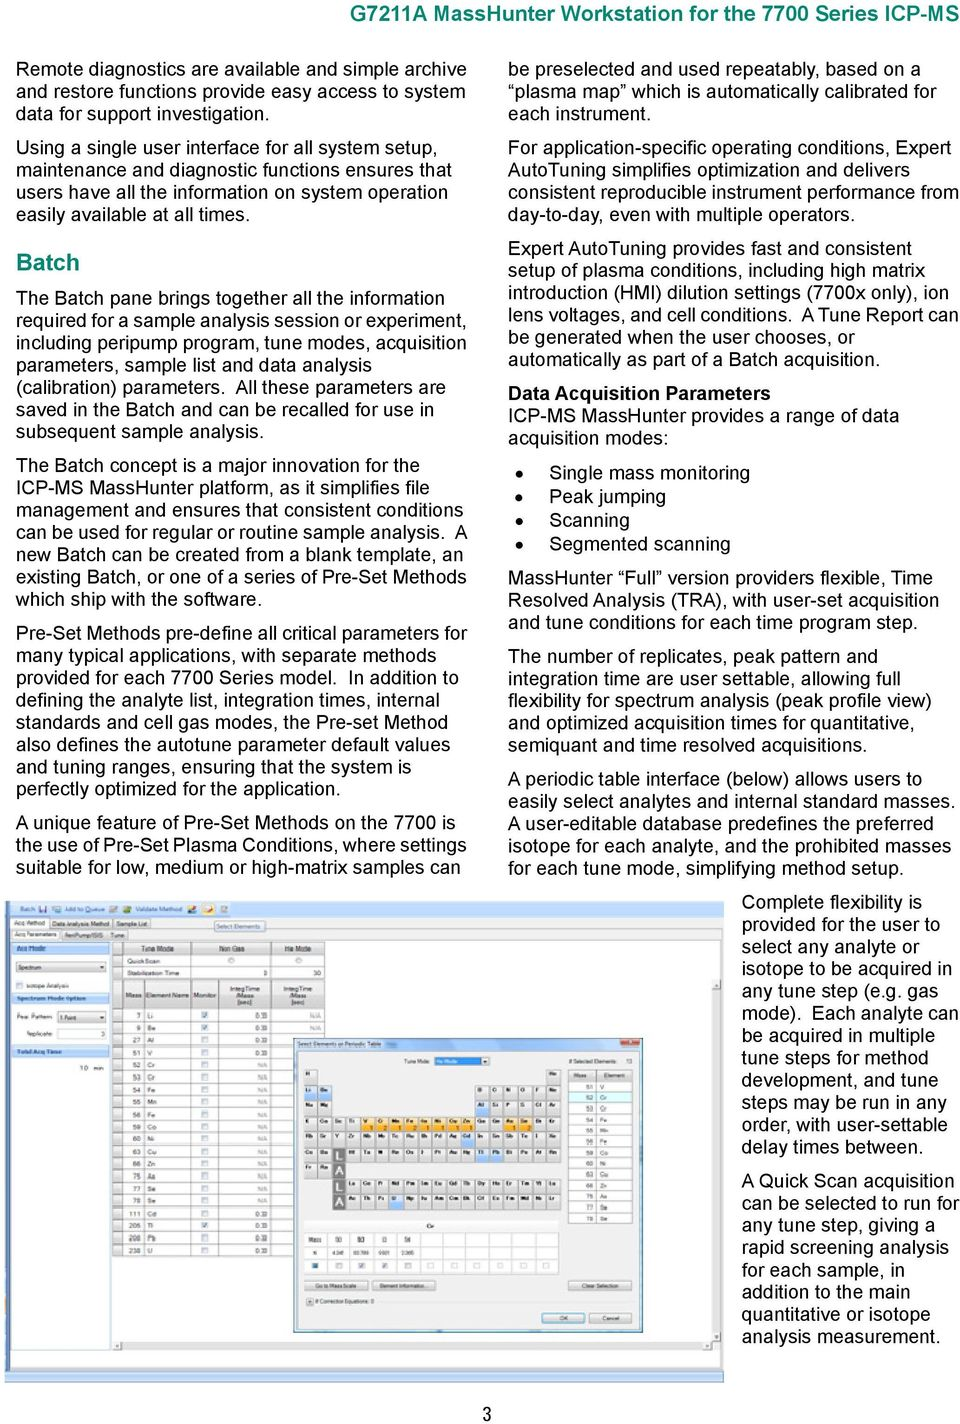 Batch The Batch pane brings together all the information required for a sample analysis session or experiment, including peripump program, tune modes, acquisition parameters, sample list and data